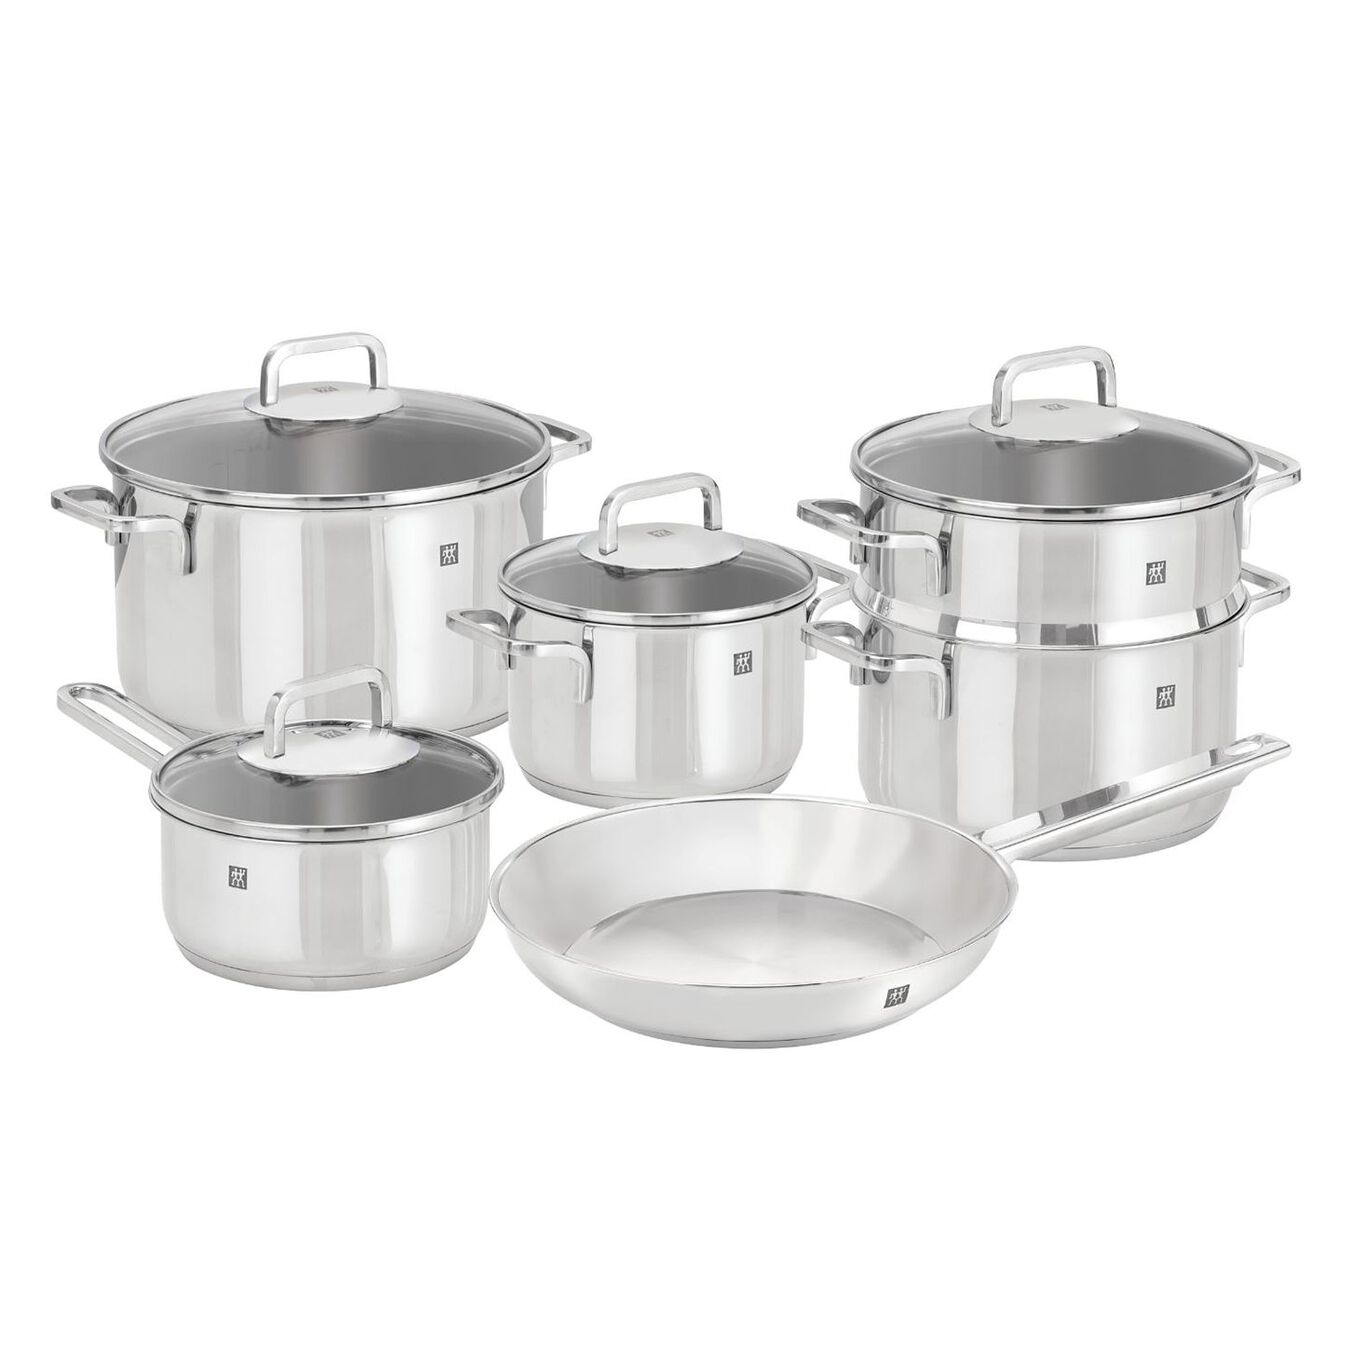 10-pcs 18/10 Stainless Steel Ensemble de casseroles et poêles,,large 1